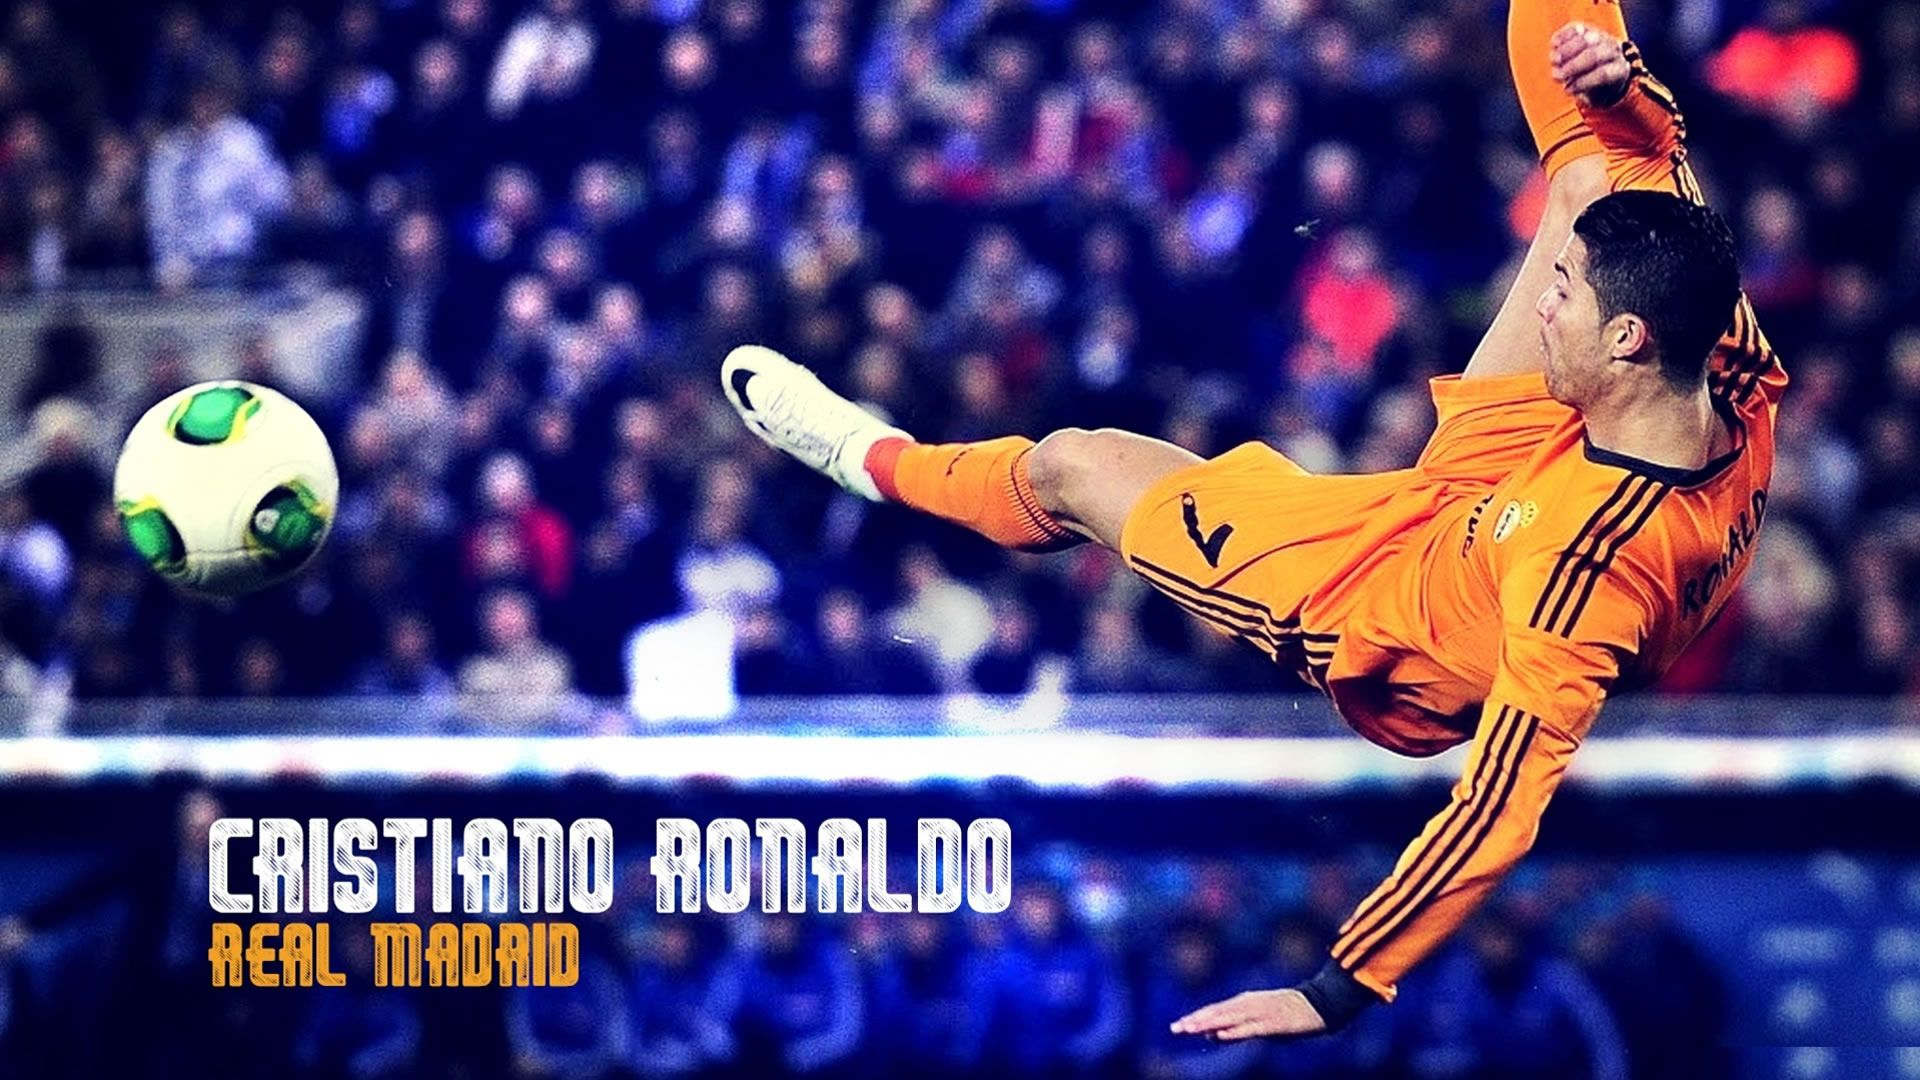 Cristiano Ronaldo Bicycle Kick Wallpaper Cristiano Ronaldo Wallpapers Cristiano Ronaldo Wallpapers Cristiano Ronaldo Ronaldo